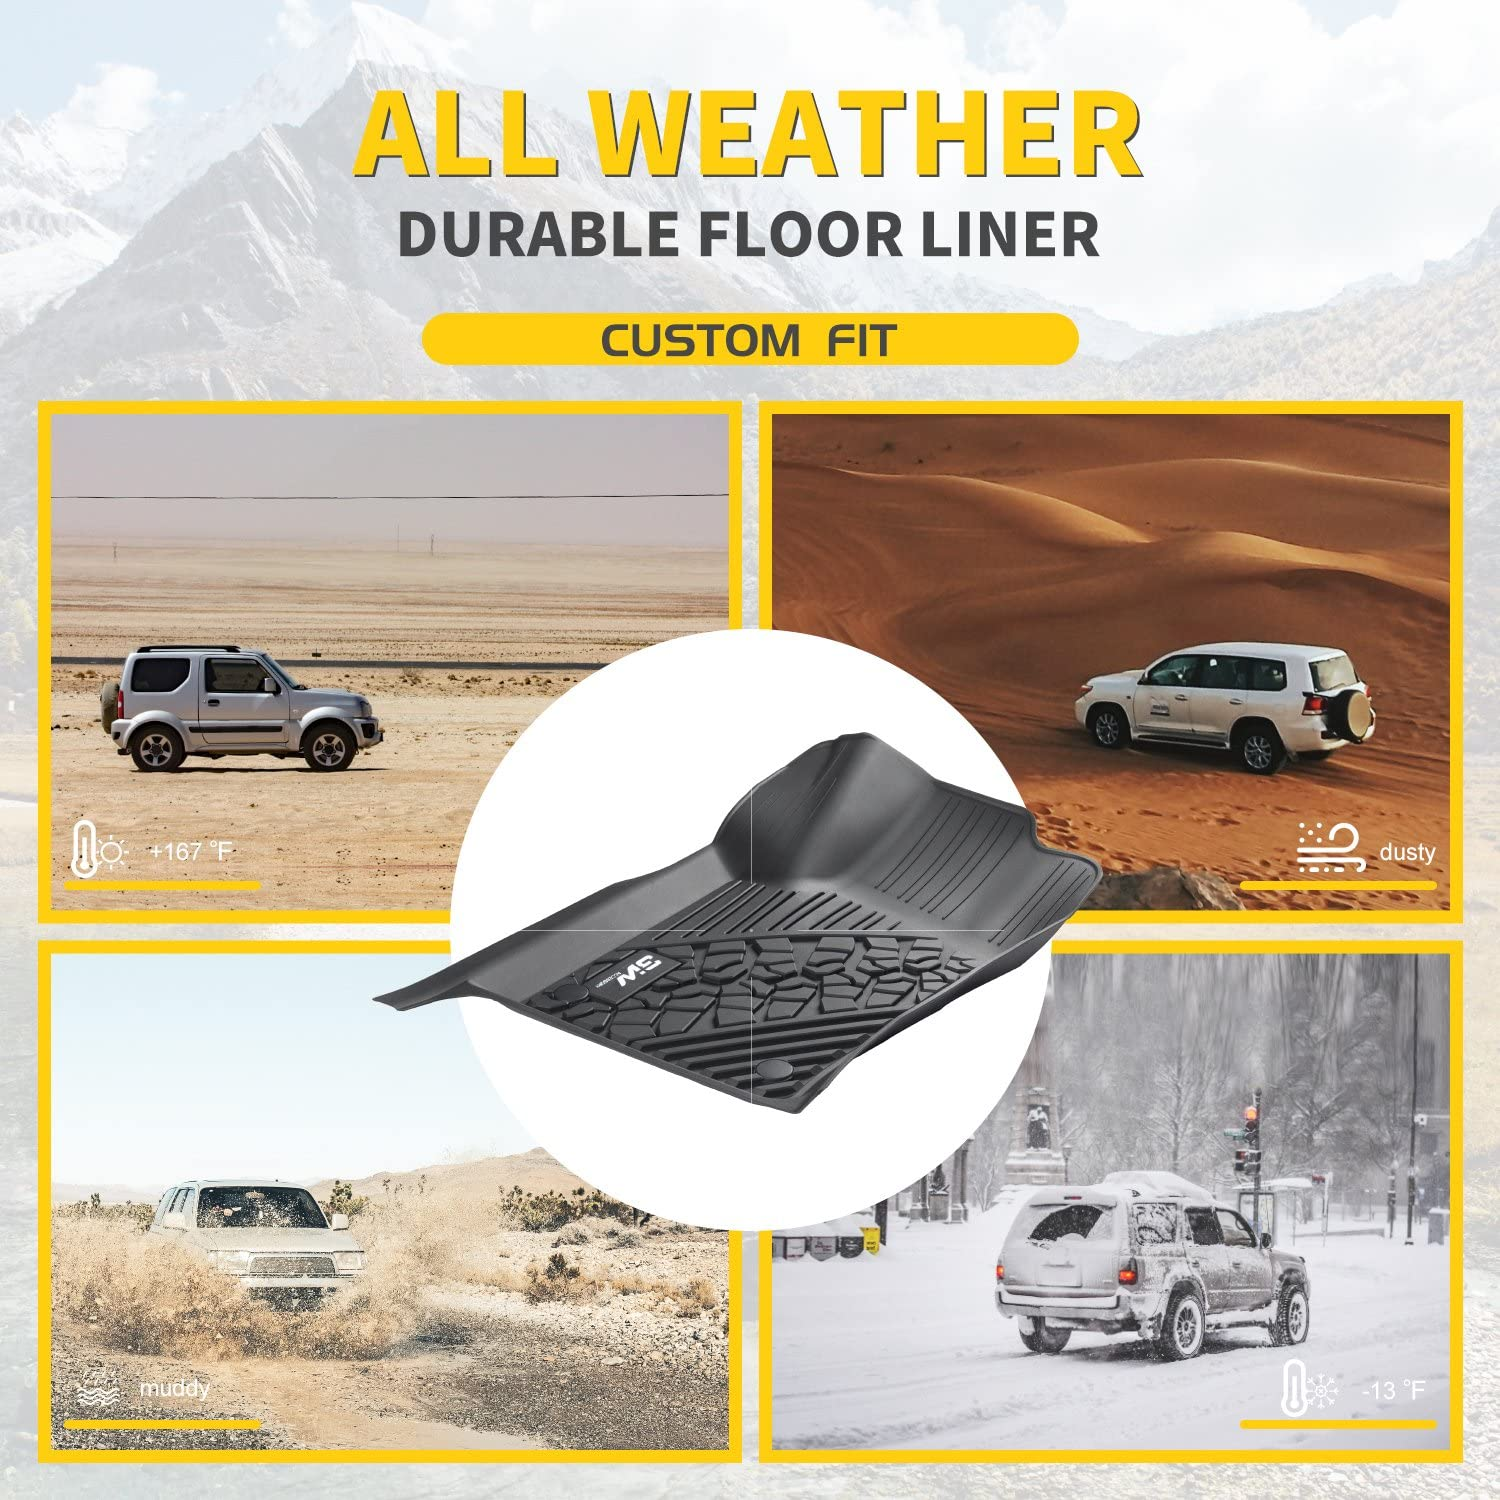 All Weather Heavy Duty Floor Mat Set Autotech Park Custom Fit Car Floor Mat Compatible with 2009-2014 Nissan Murano SUV